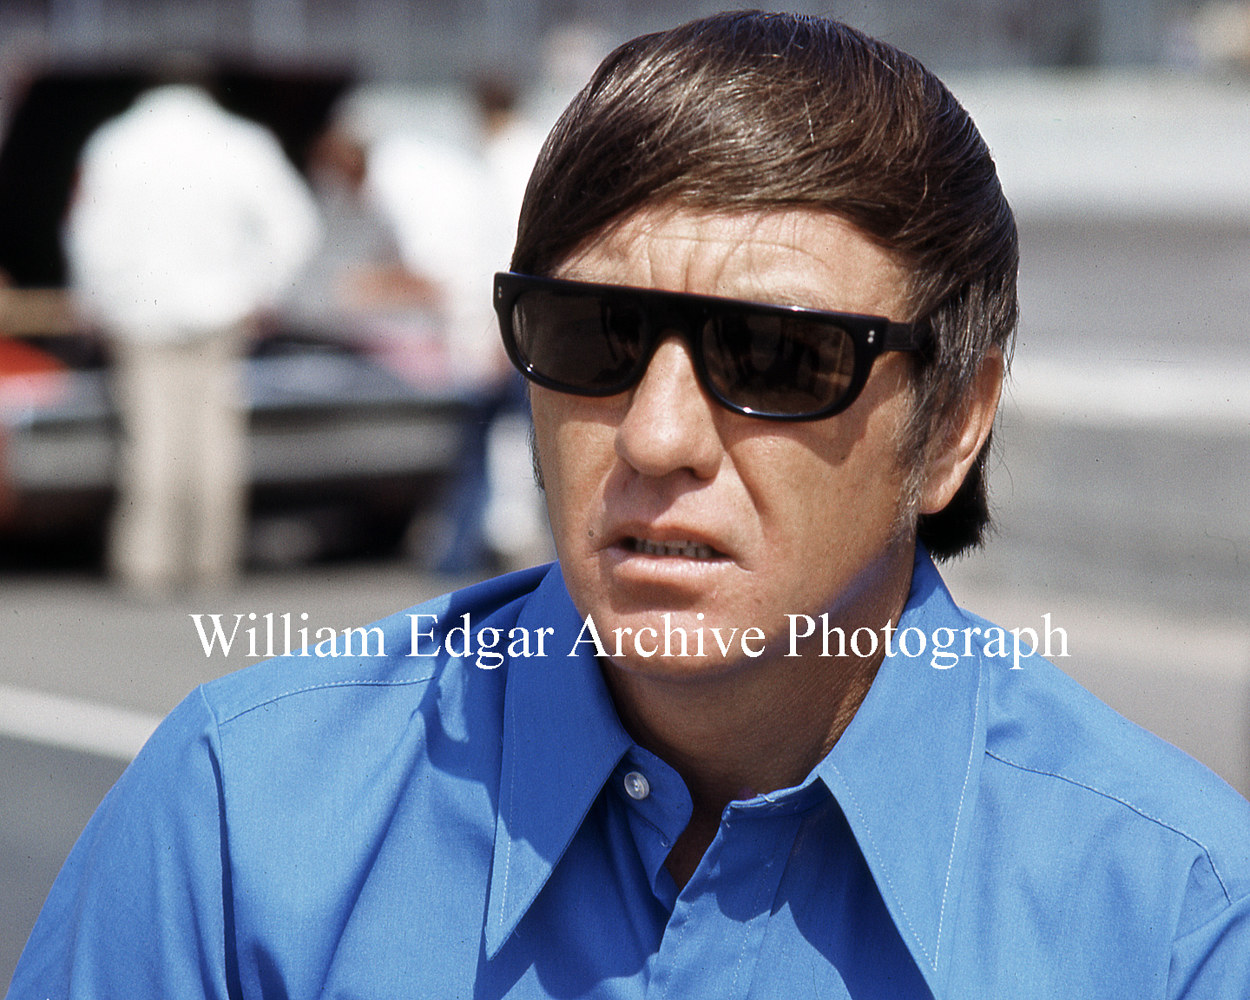 Photography [RI-BIPAD] Bobby Isaac at the NASCAR Reble 400 - Darlington Raceway, South Carolina - May 1, 1971 by William Edgar